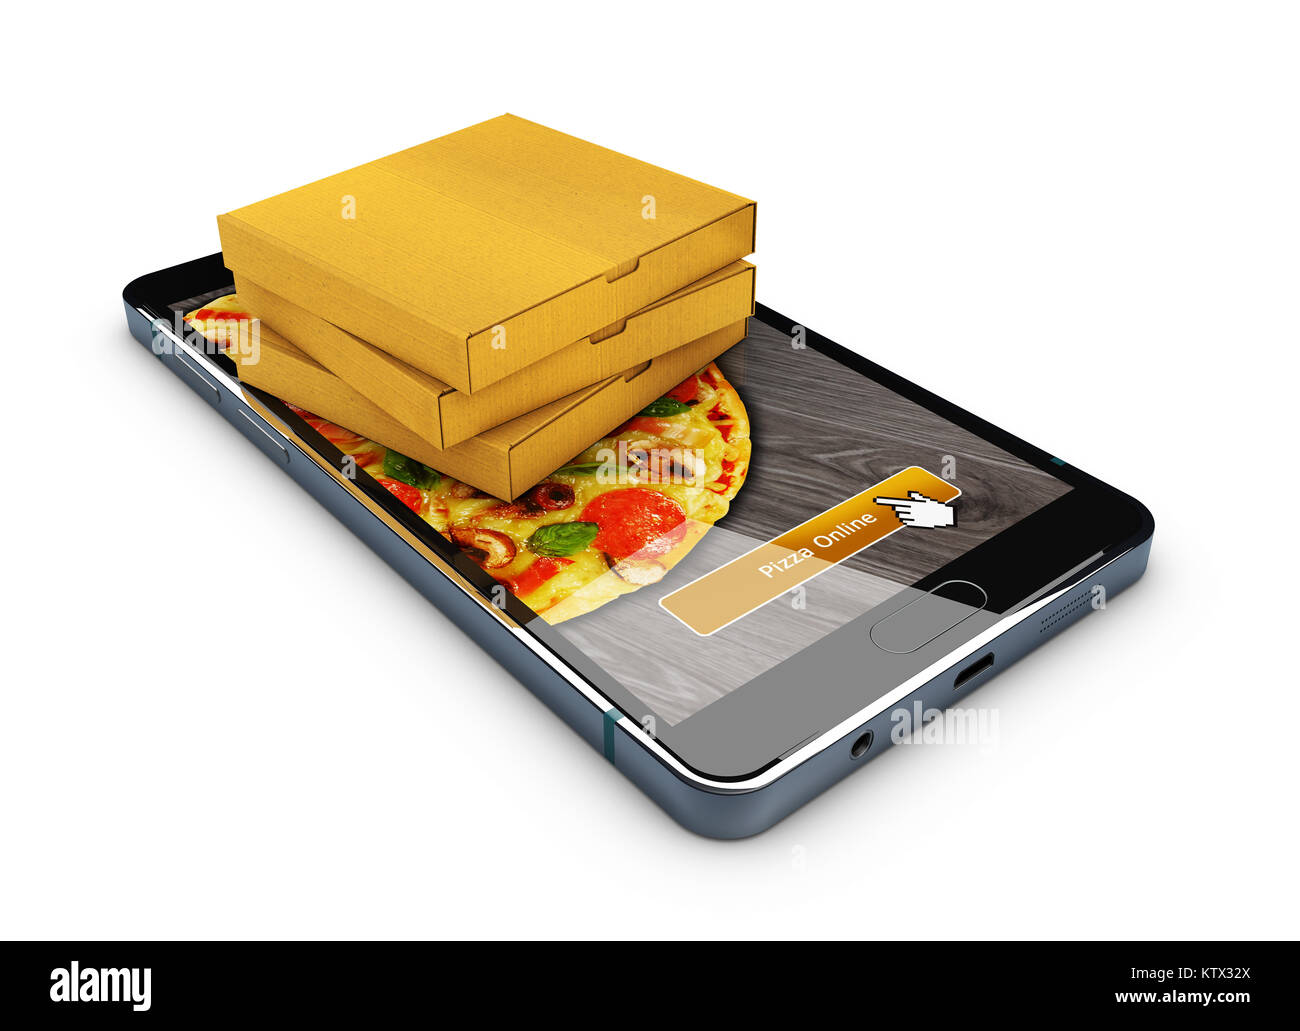 how to order pizza on phone